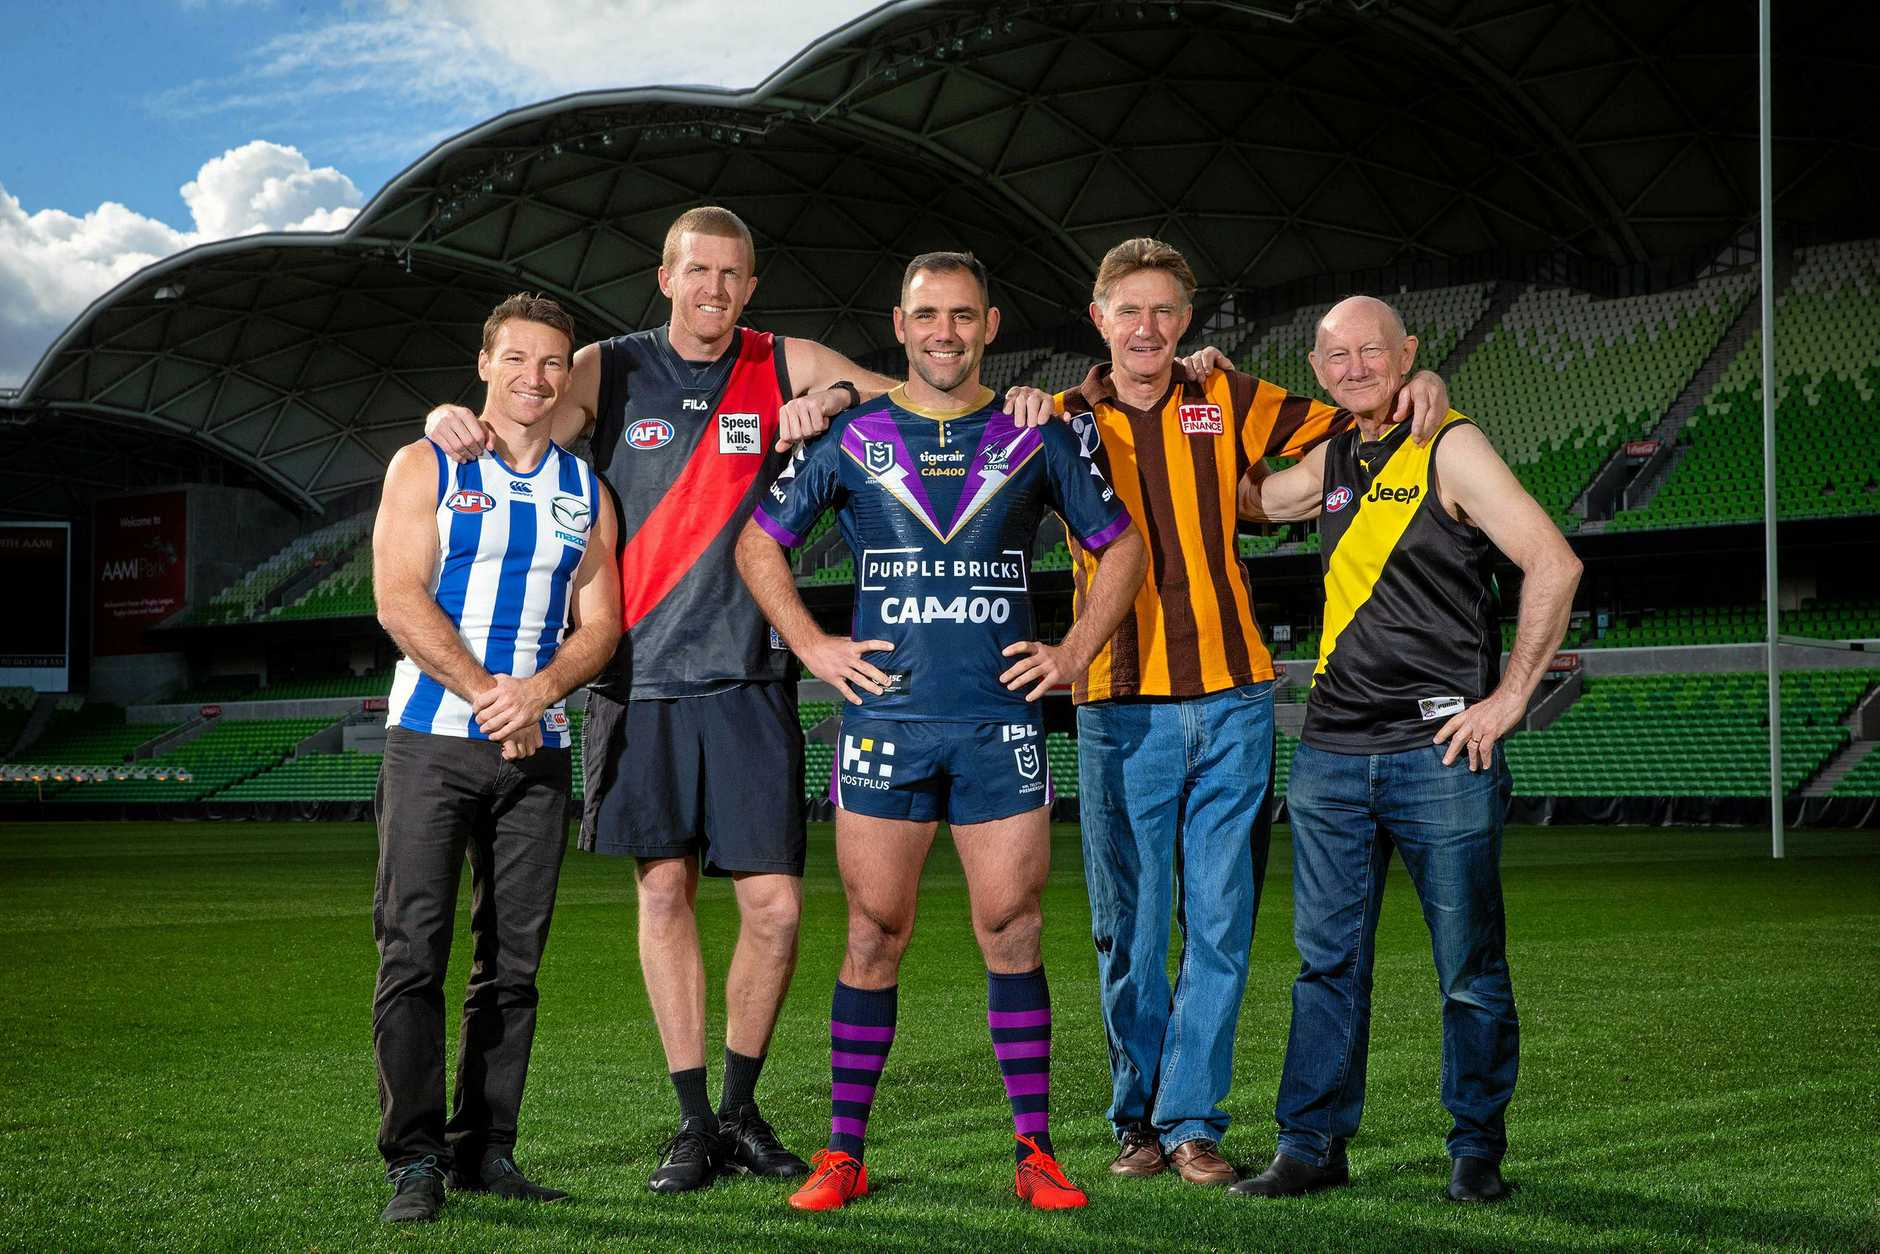 . *EXCLUSIVE SPEAK TO HERALD SUN PICTURE DESK BEFORE USING* NRL's Melbourne Storm star Cameron Smith will play his 400th game this weekend. He is joined by the AFL 400 Club, Brent Harvey, Dustin Fletcher, Michael Tuck and Kevin Bartlett. Picture: Mark Stewart